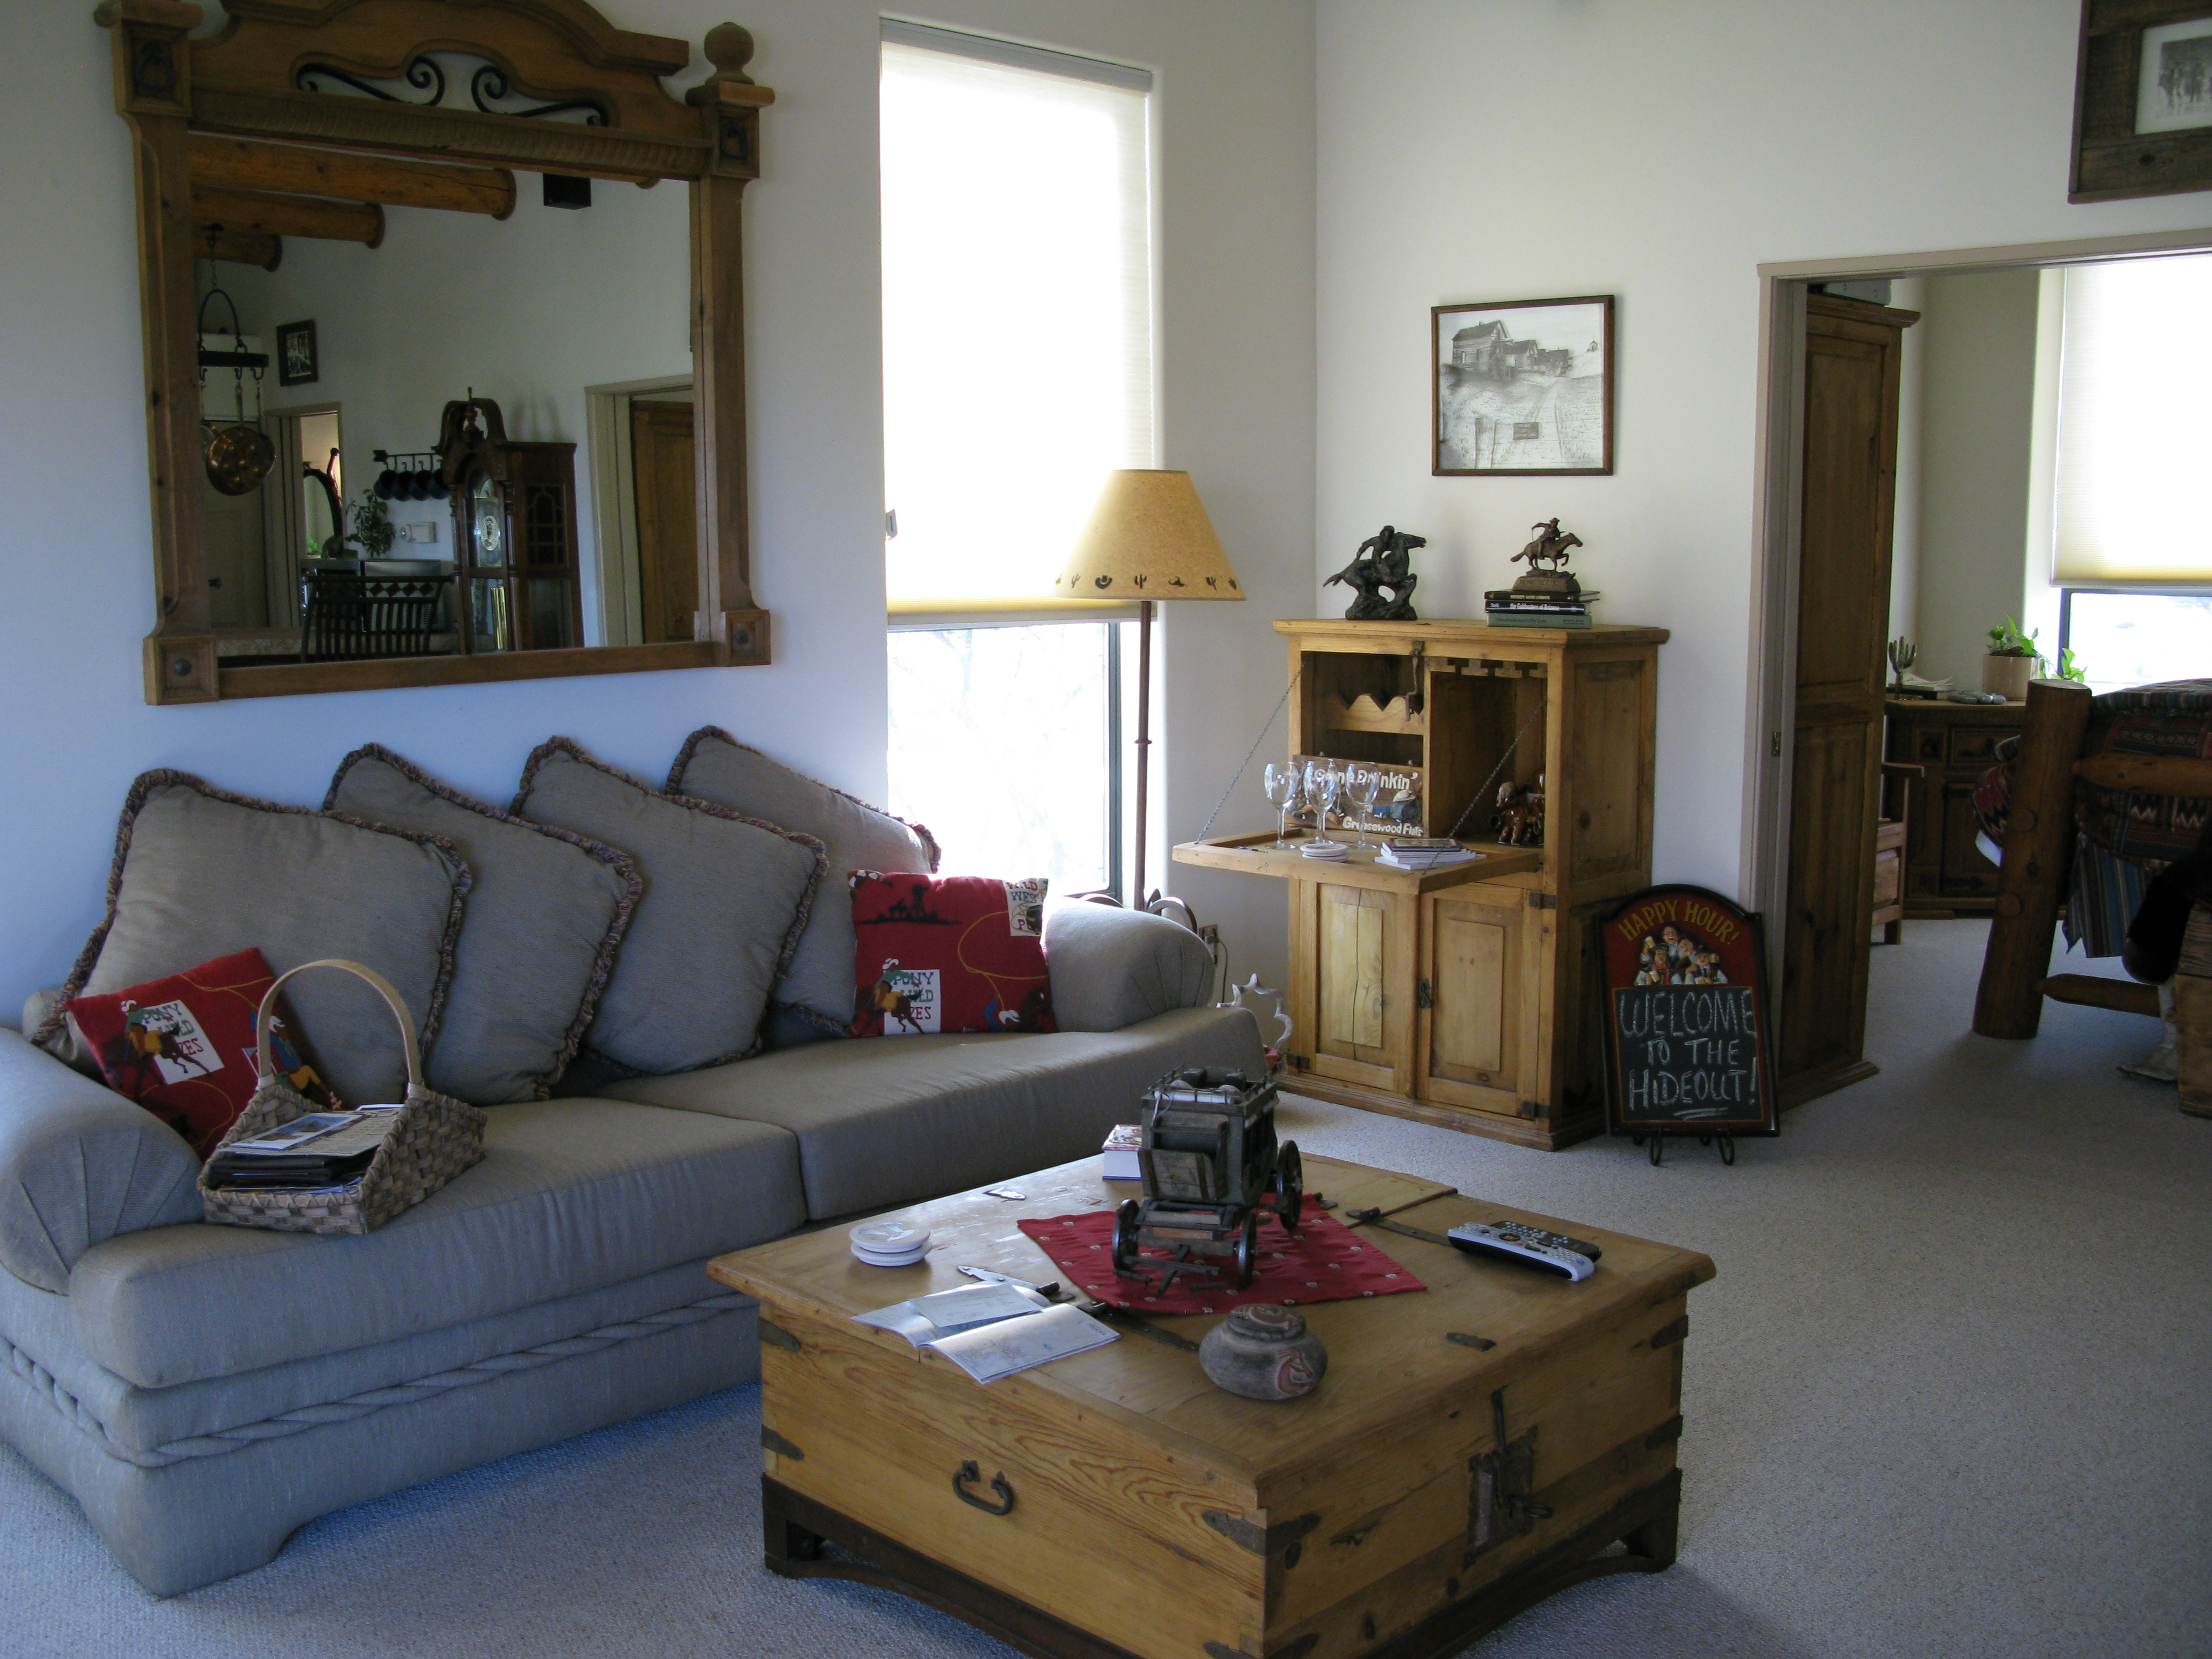 Redbuck Ranch Bed and Breakfast